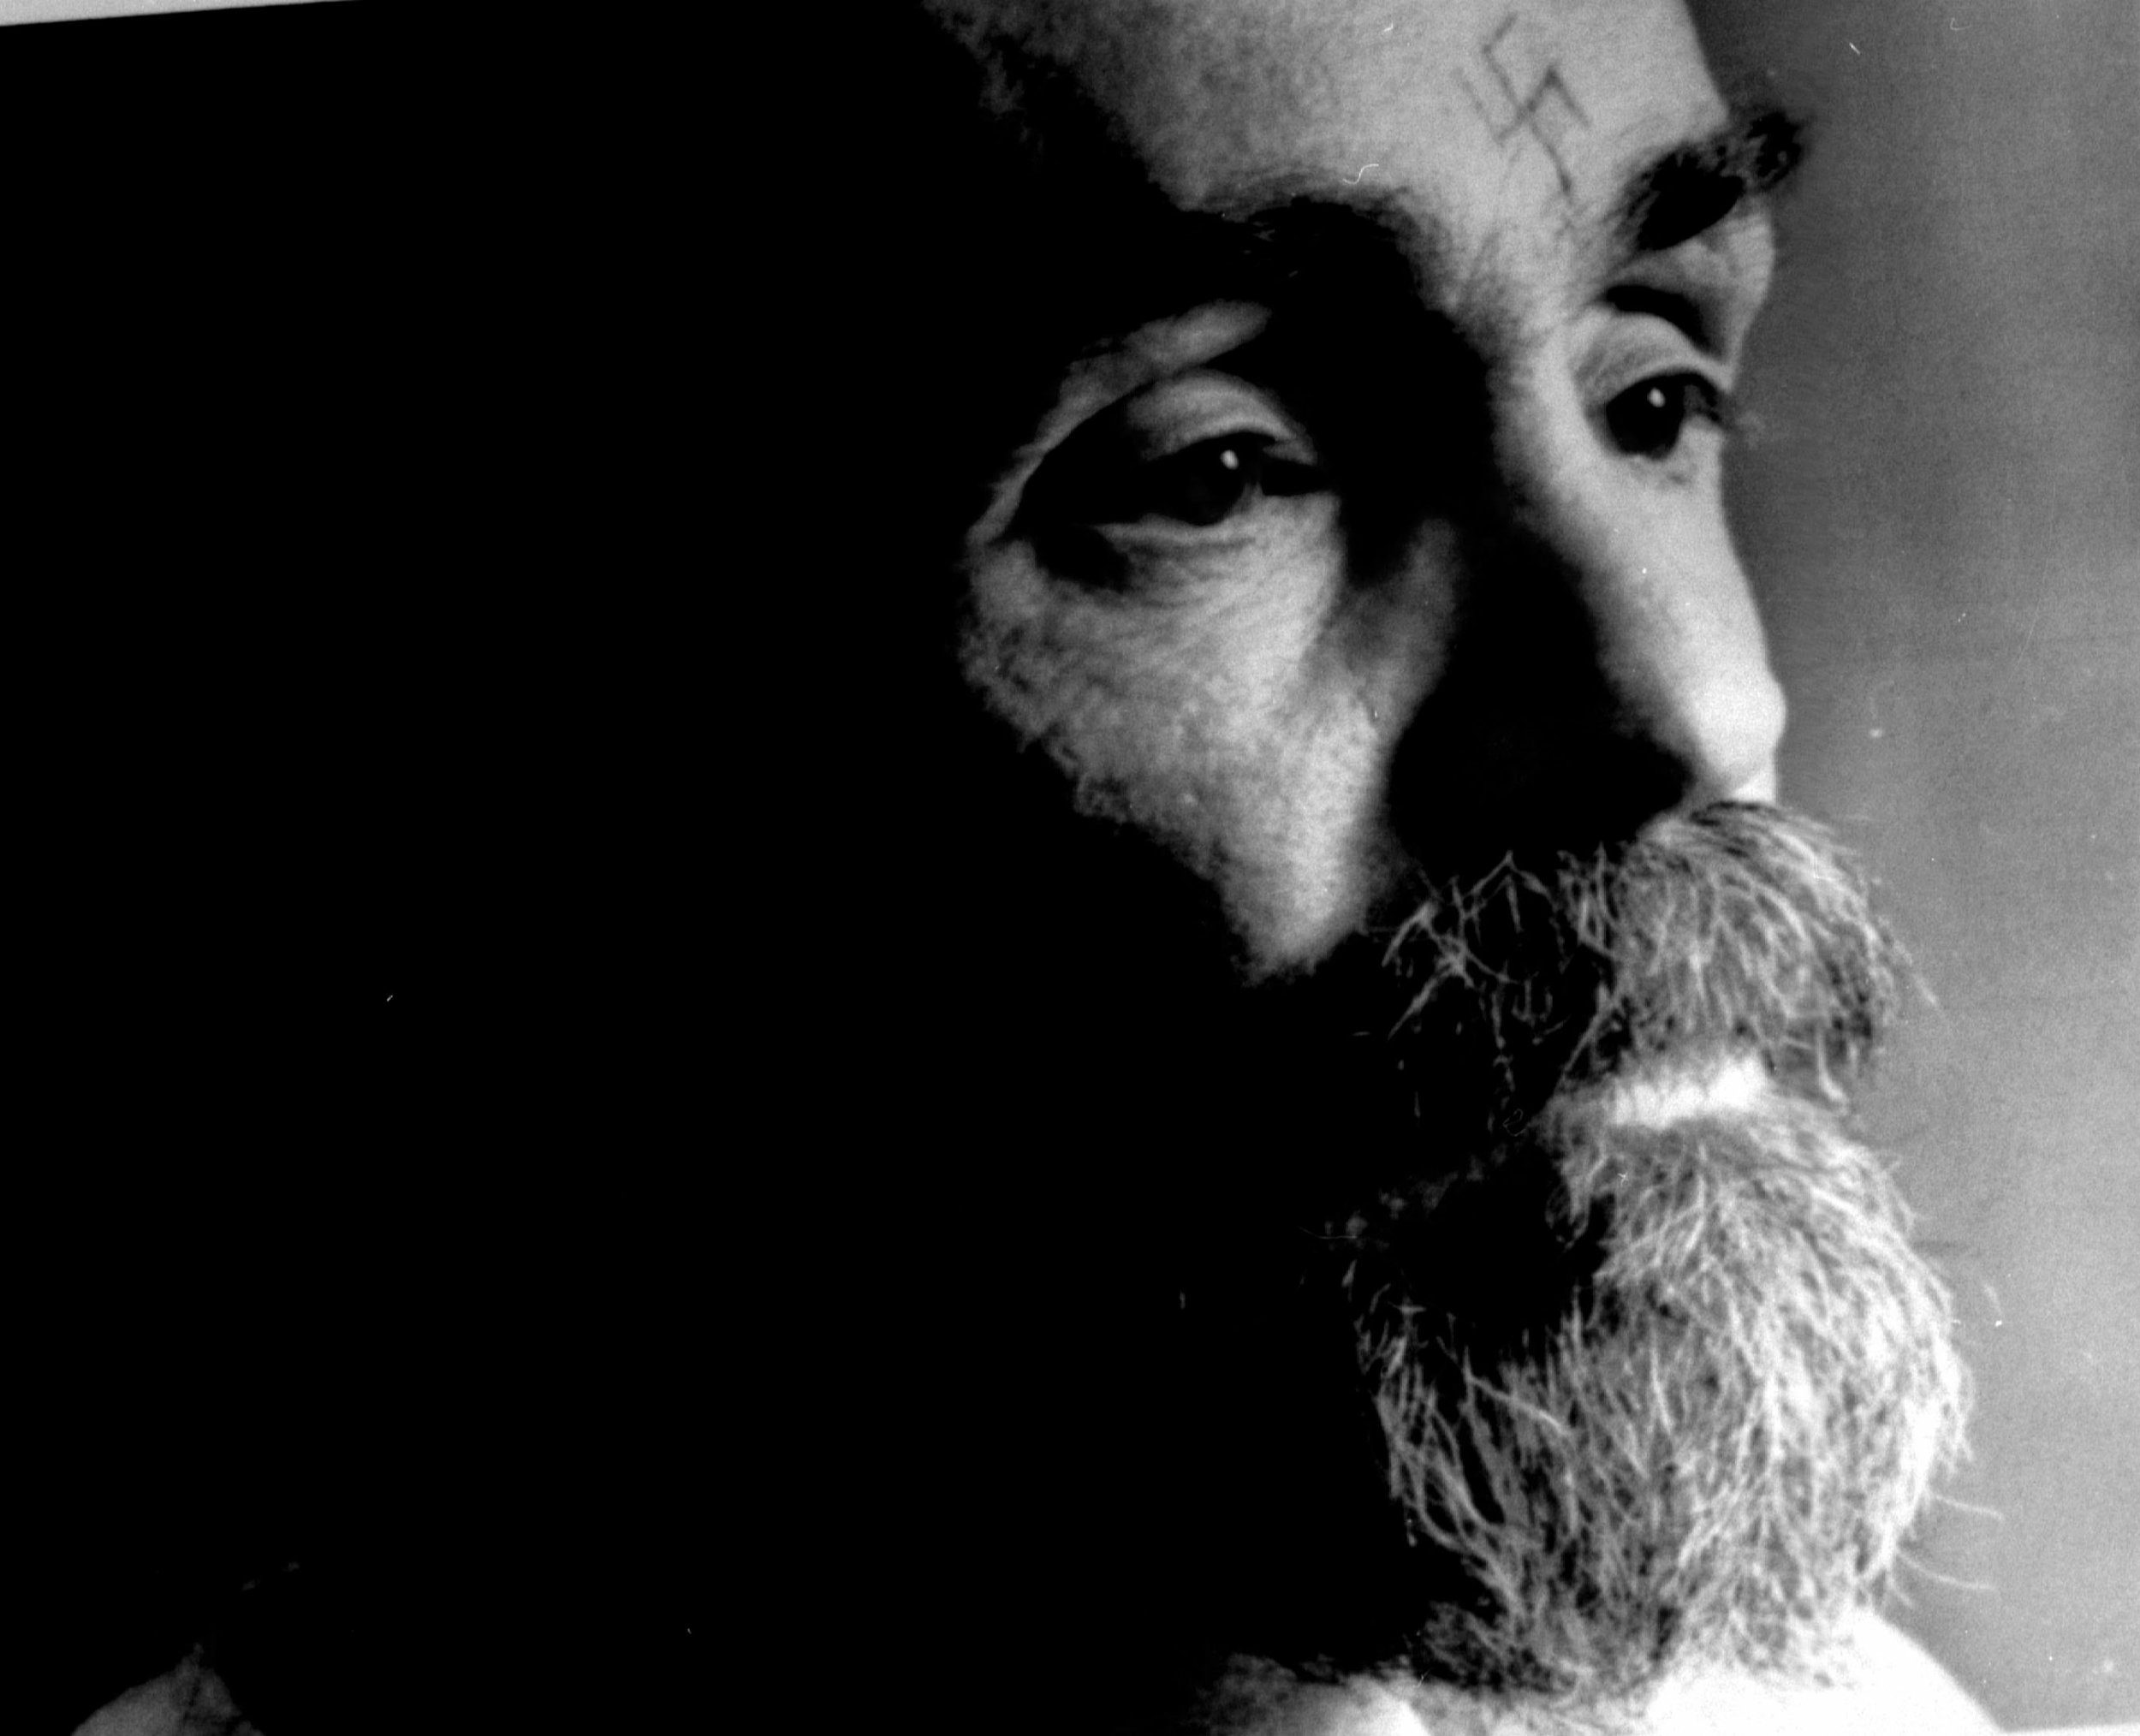 Charles Manson's murders haunted the music world for decades